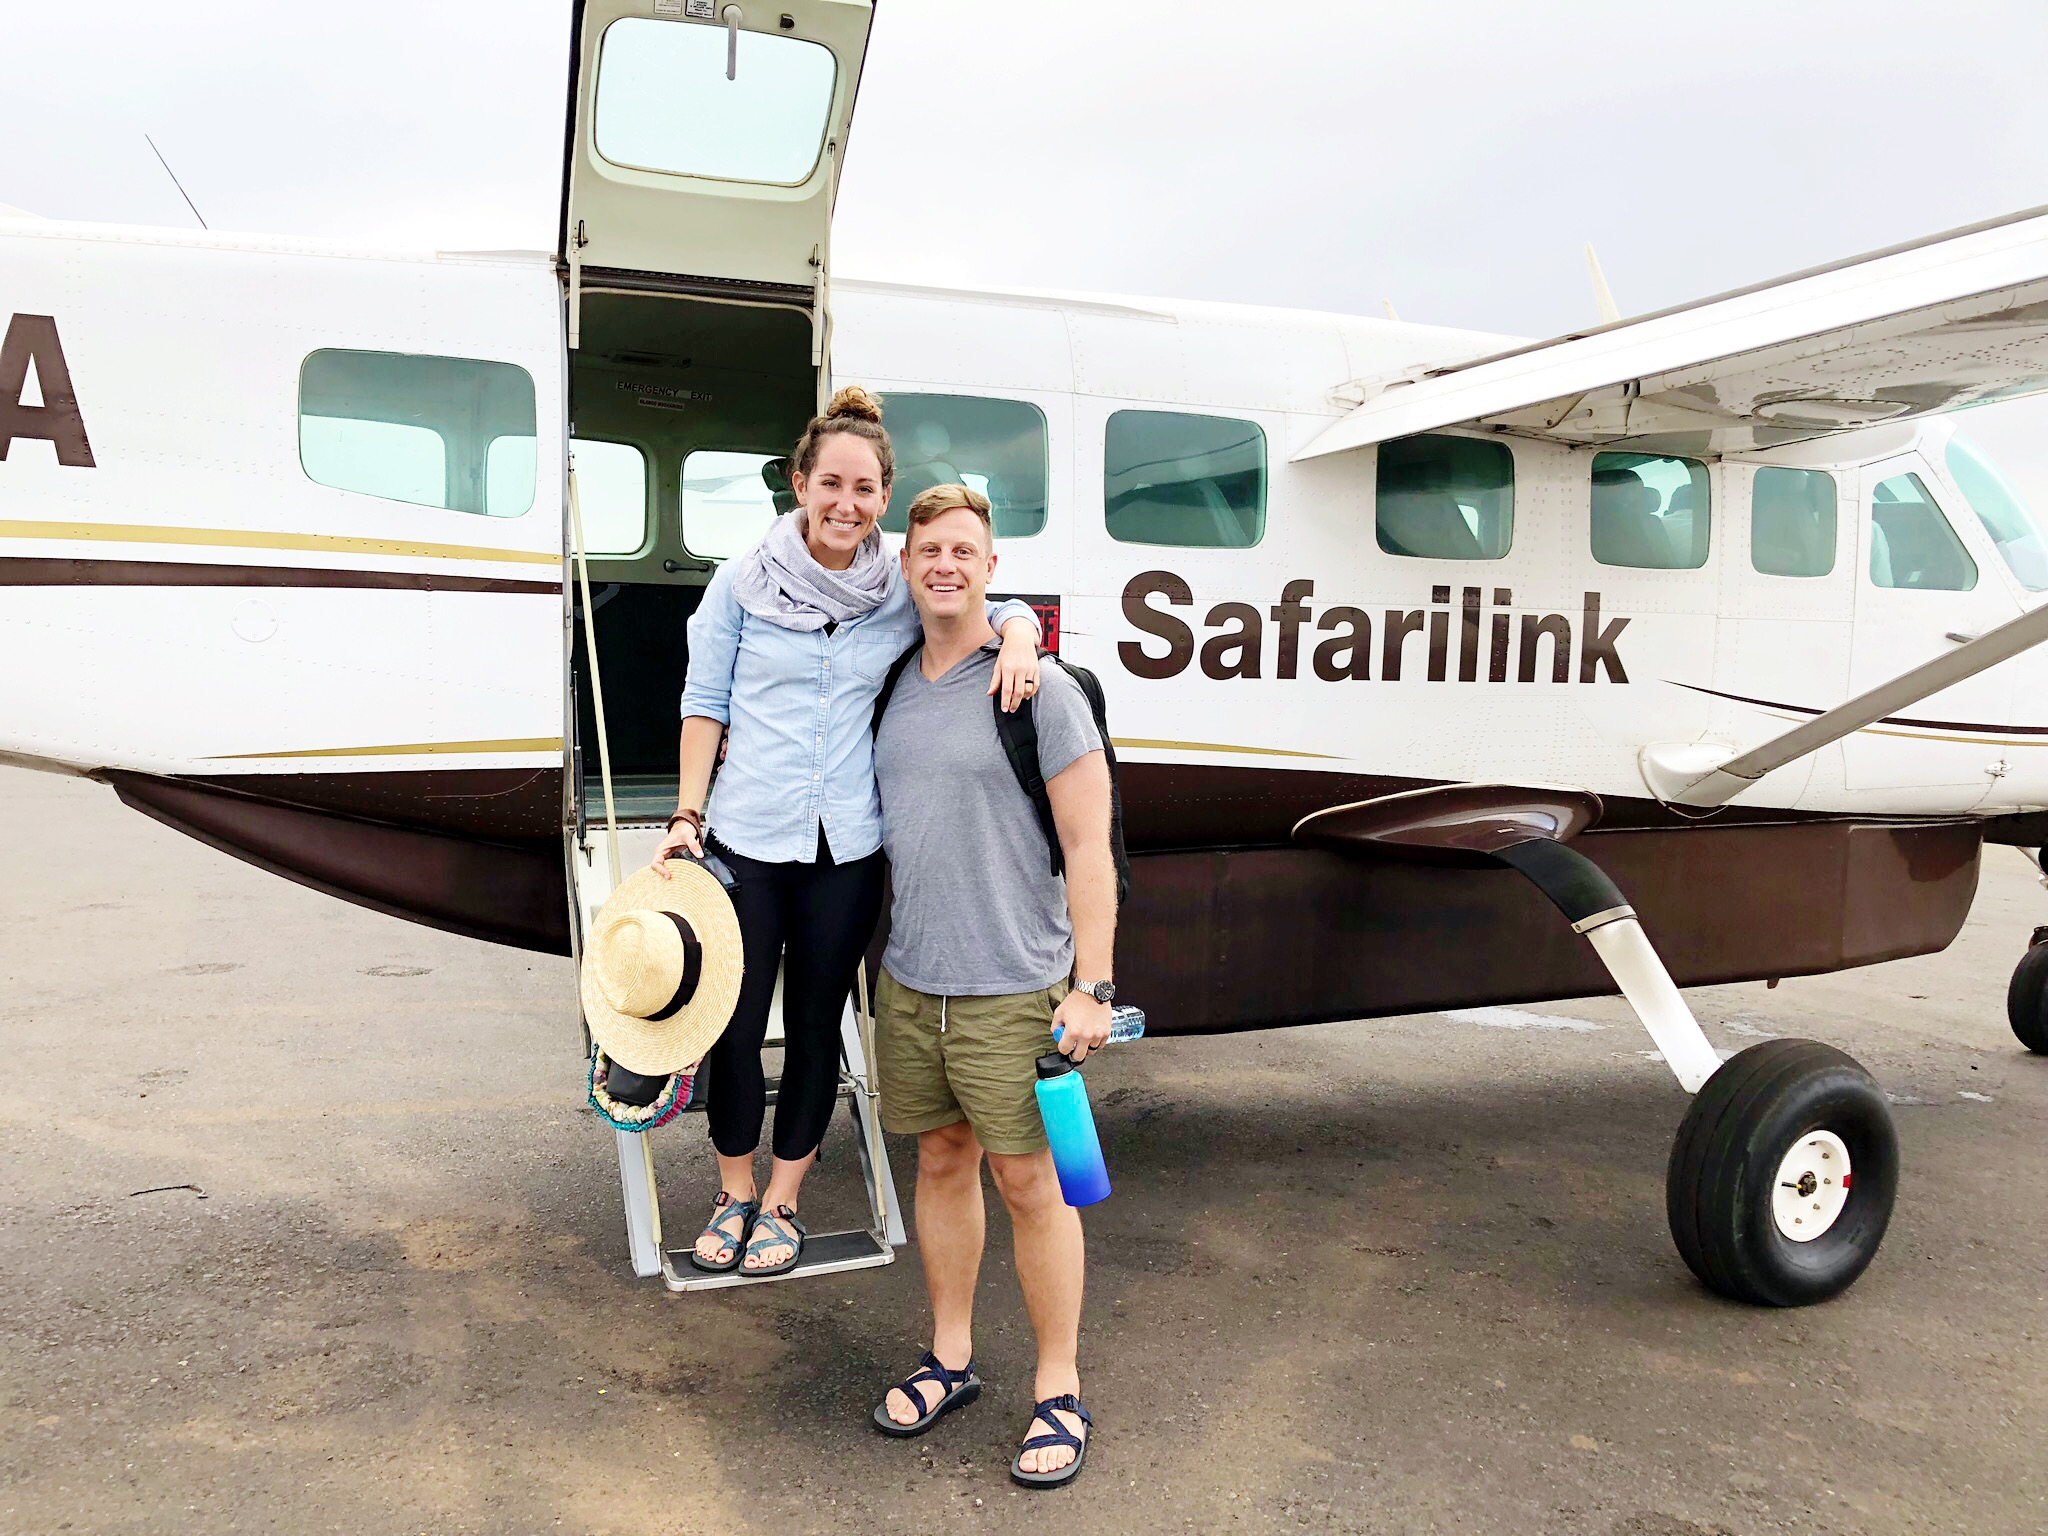 Kenya Bush Plane Review: Safarilink - Everything you need to know about flying Kenya's domestic safari airline, including regulations and my honest review!   Safarilink Review - Safarilink Kenya - Safarilink planes - Bush plane - Bush Plane Review - Best Bus Plane Africa